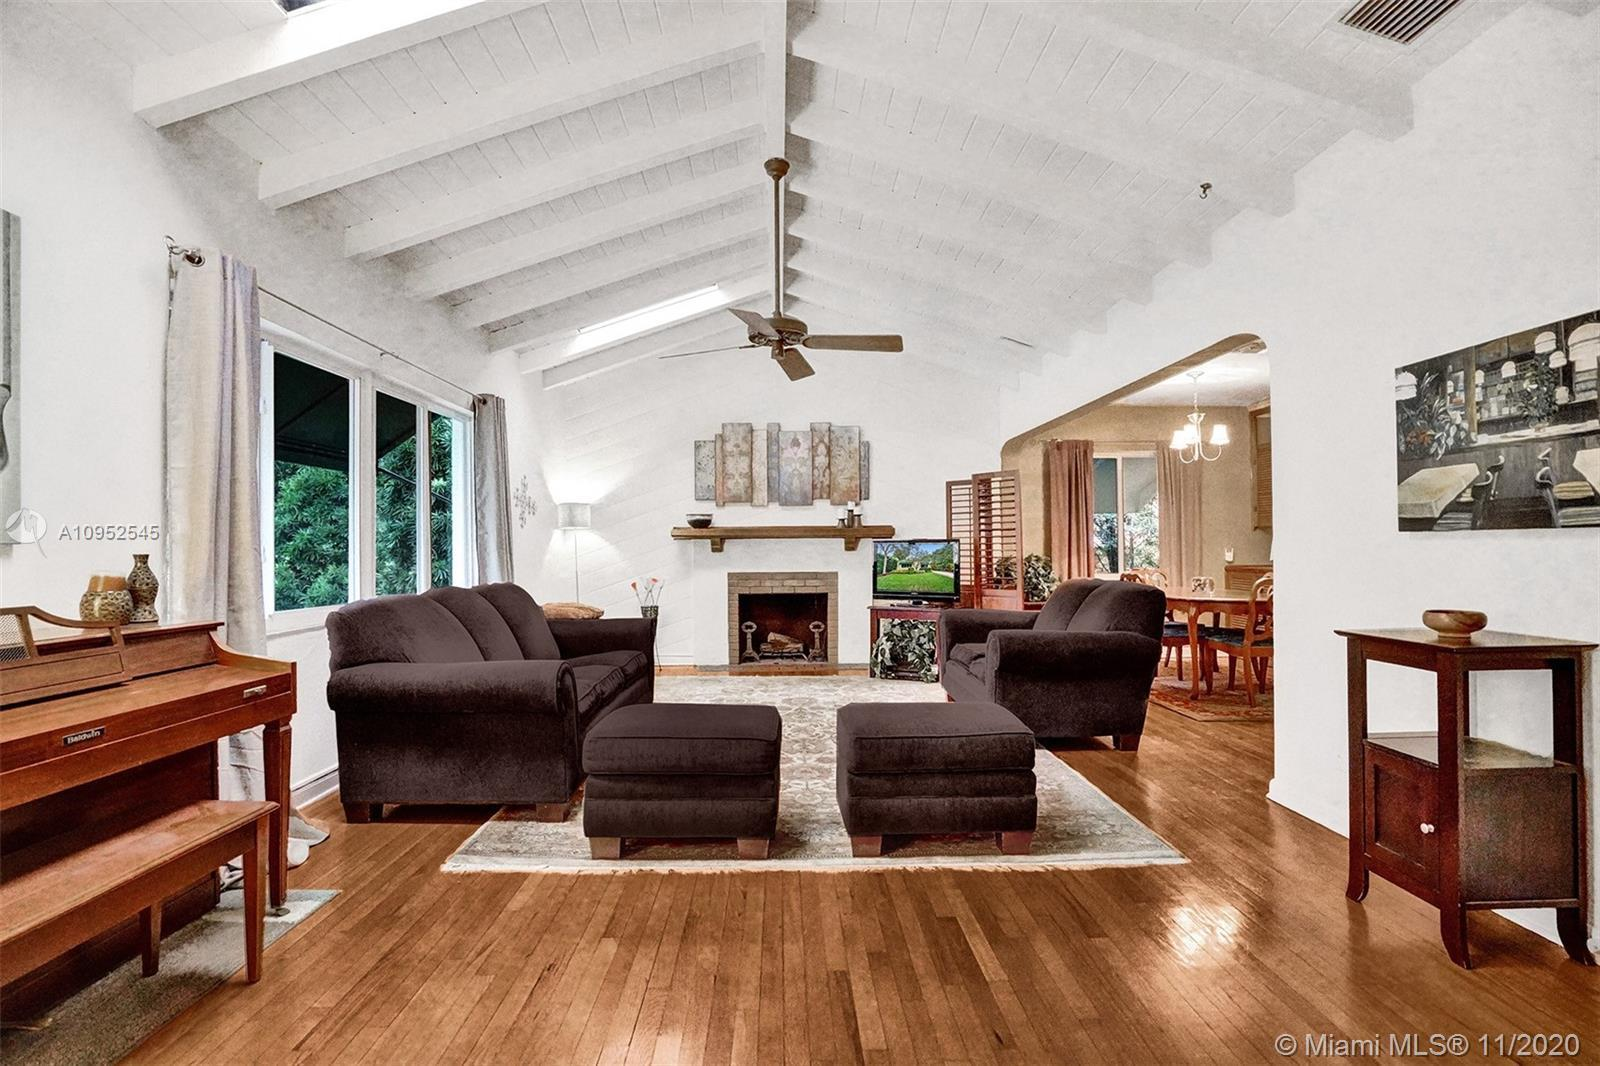 Rare opportunity to own this charming 2 bed / 2 bath mid-century pool home in the heart of Rio Vista